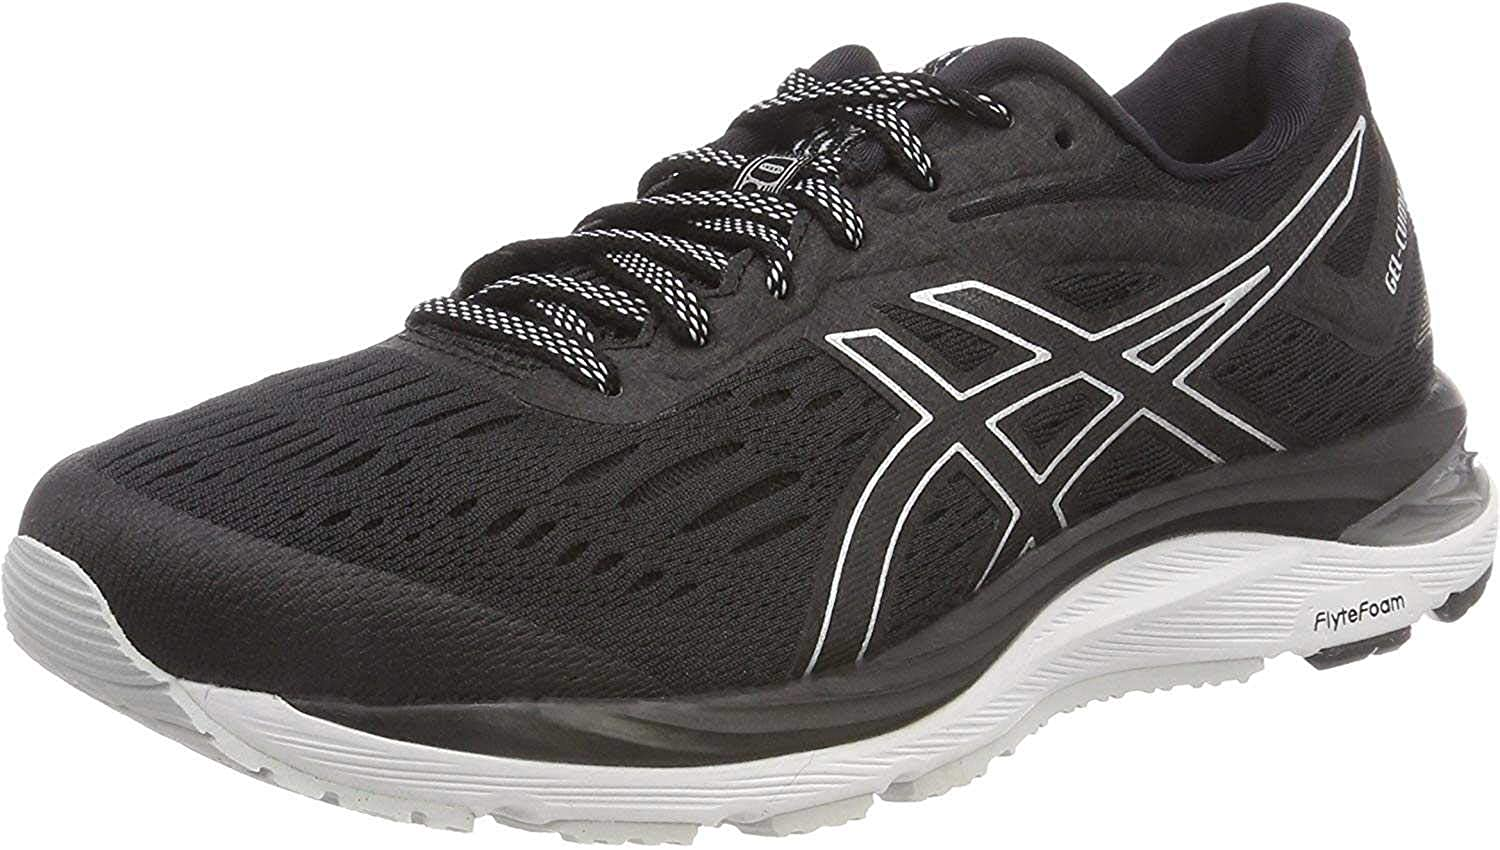 ASICS Men's Gel-Cumulus 20 Track and Field Shoes